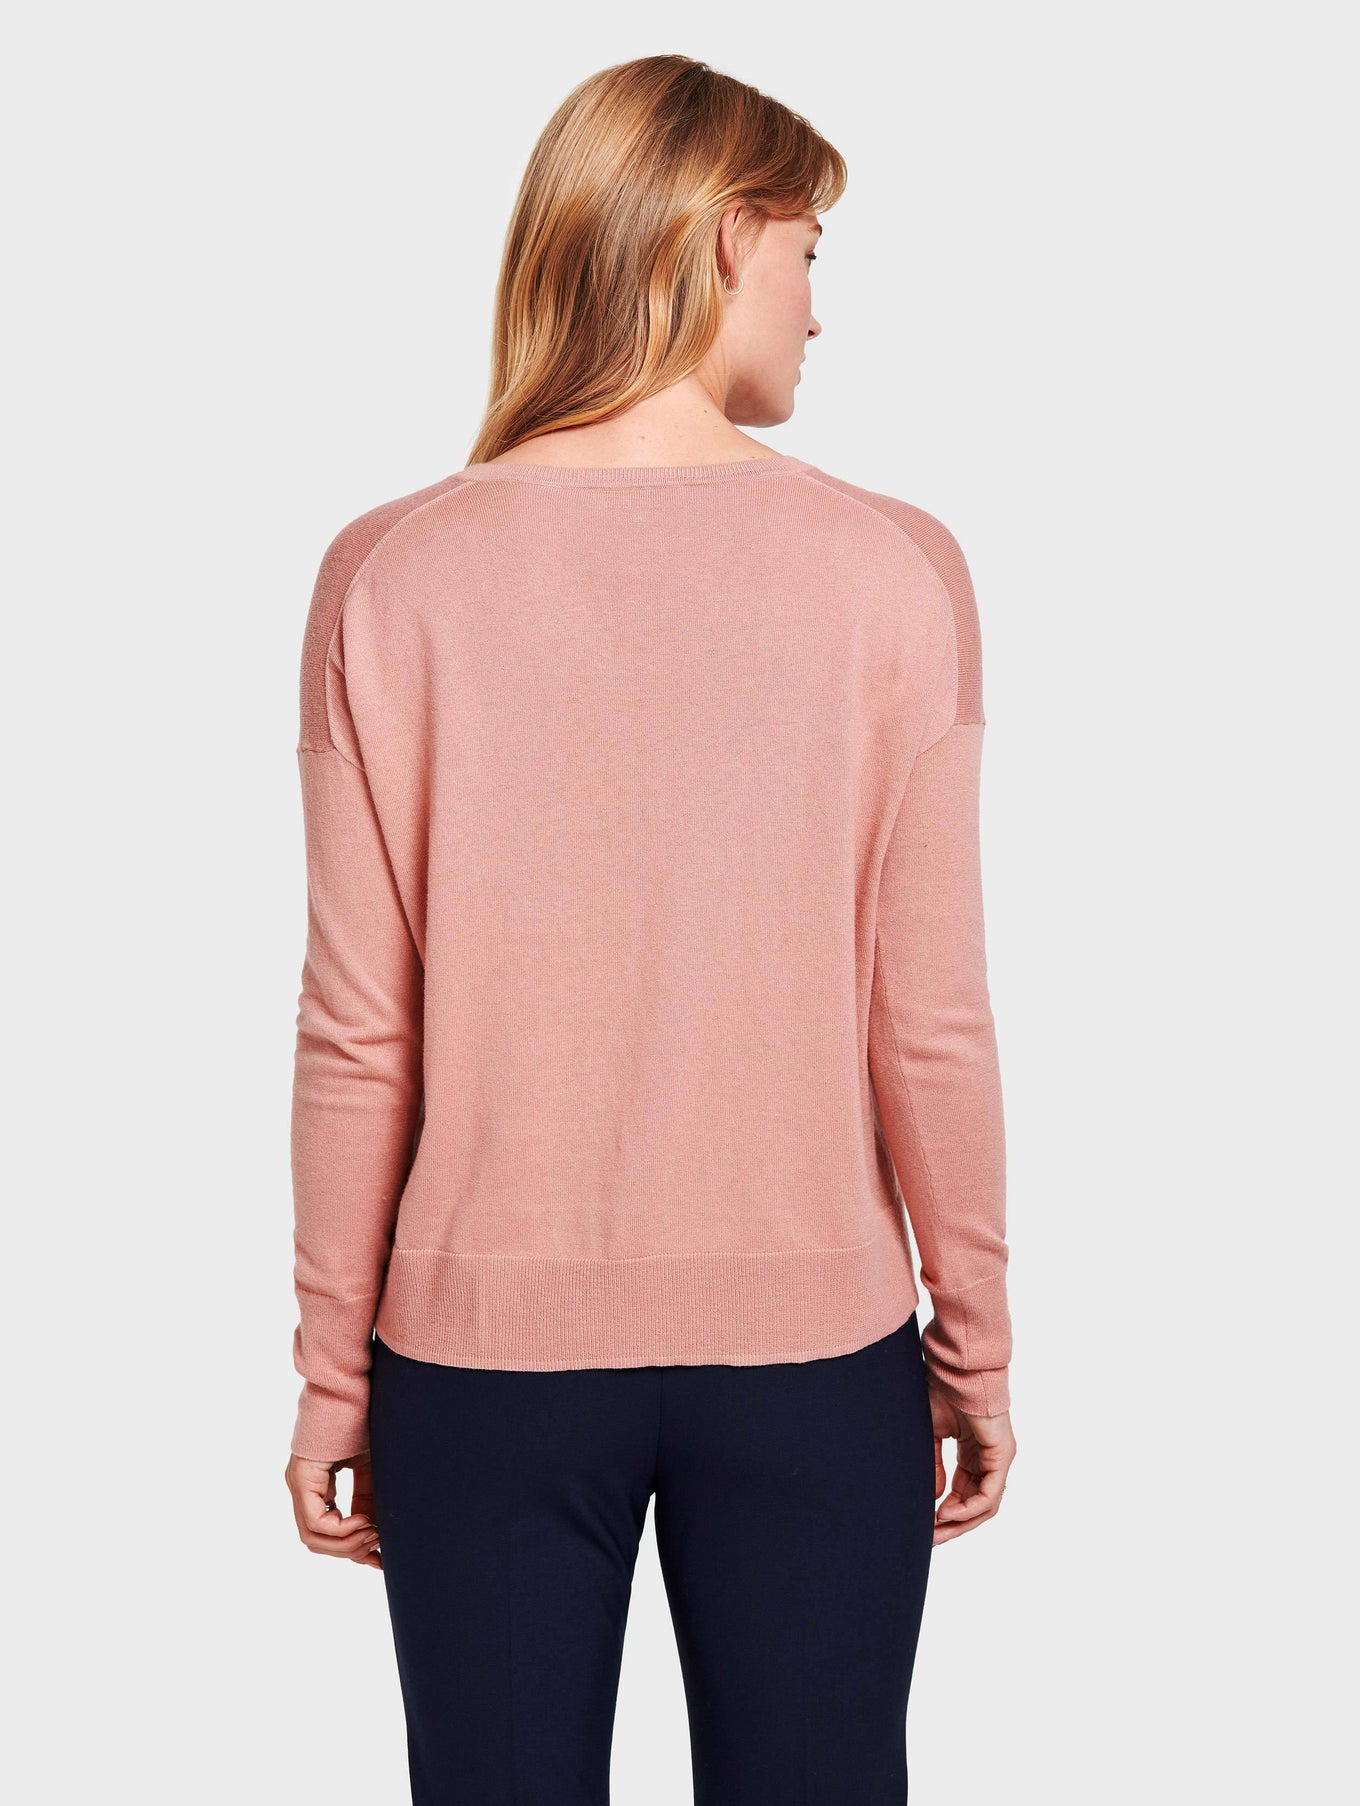 Drop Shoulder V Neck - Canyon Rose Heather - Image 4